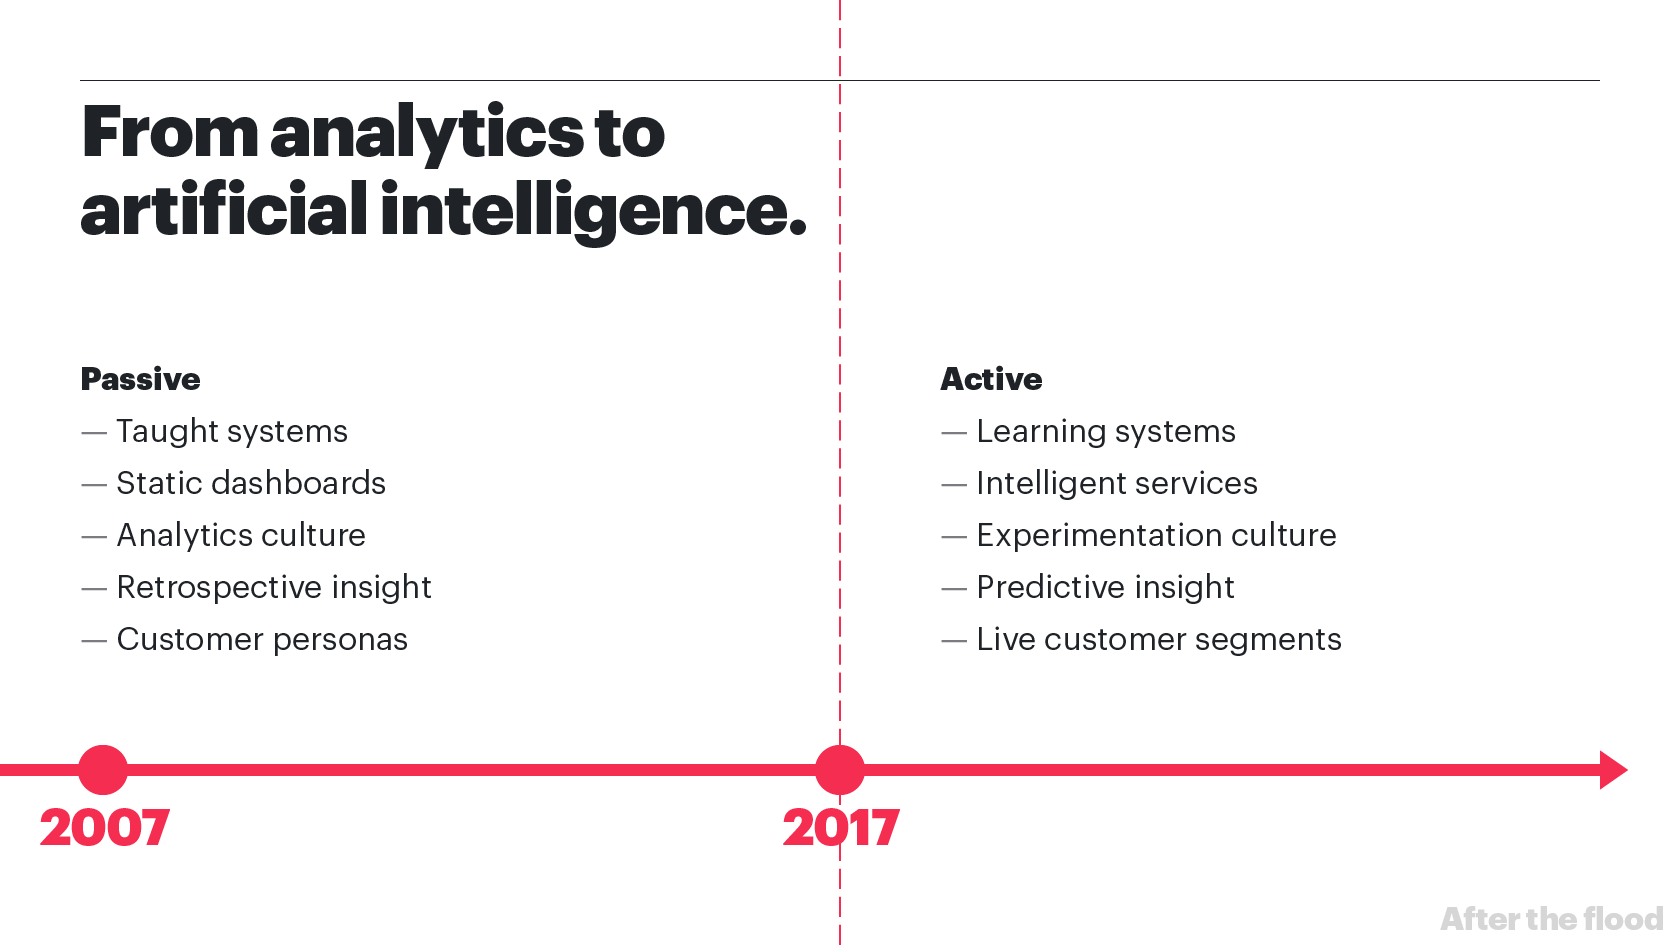 From analytics to artificial intelligence